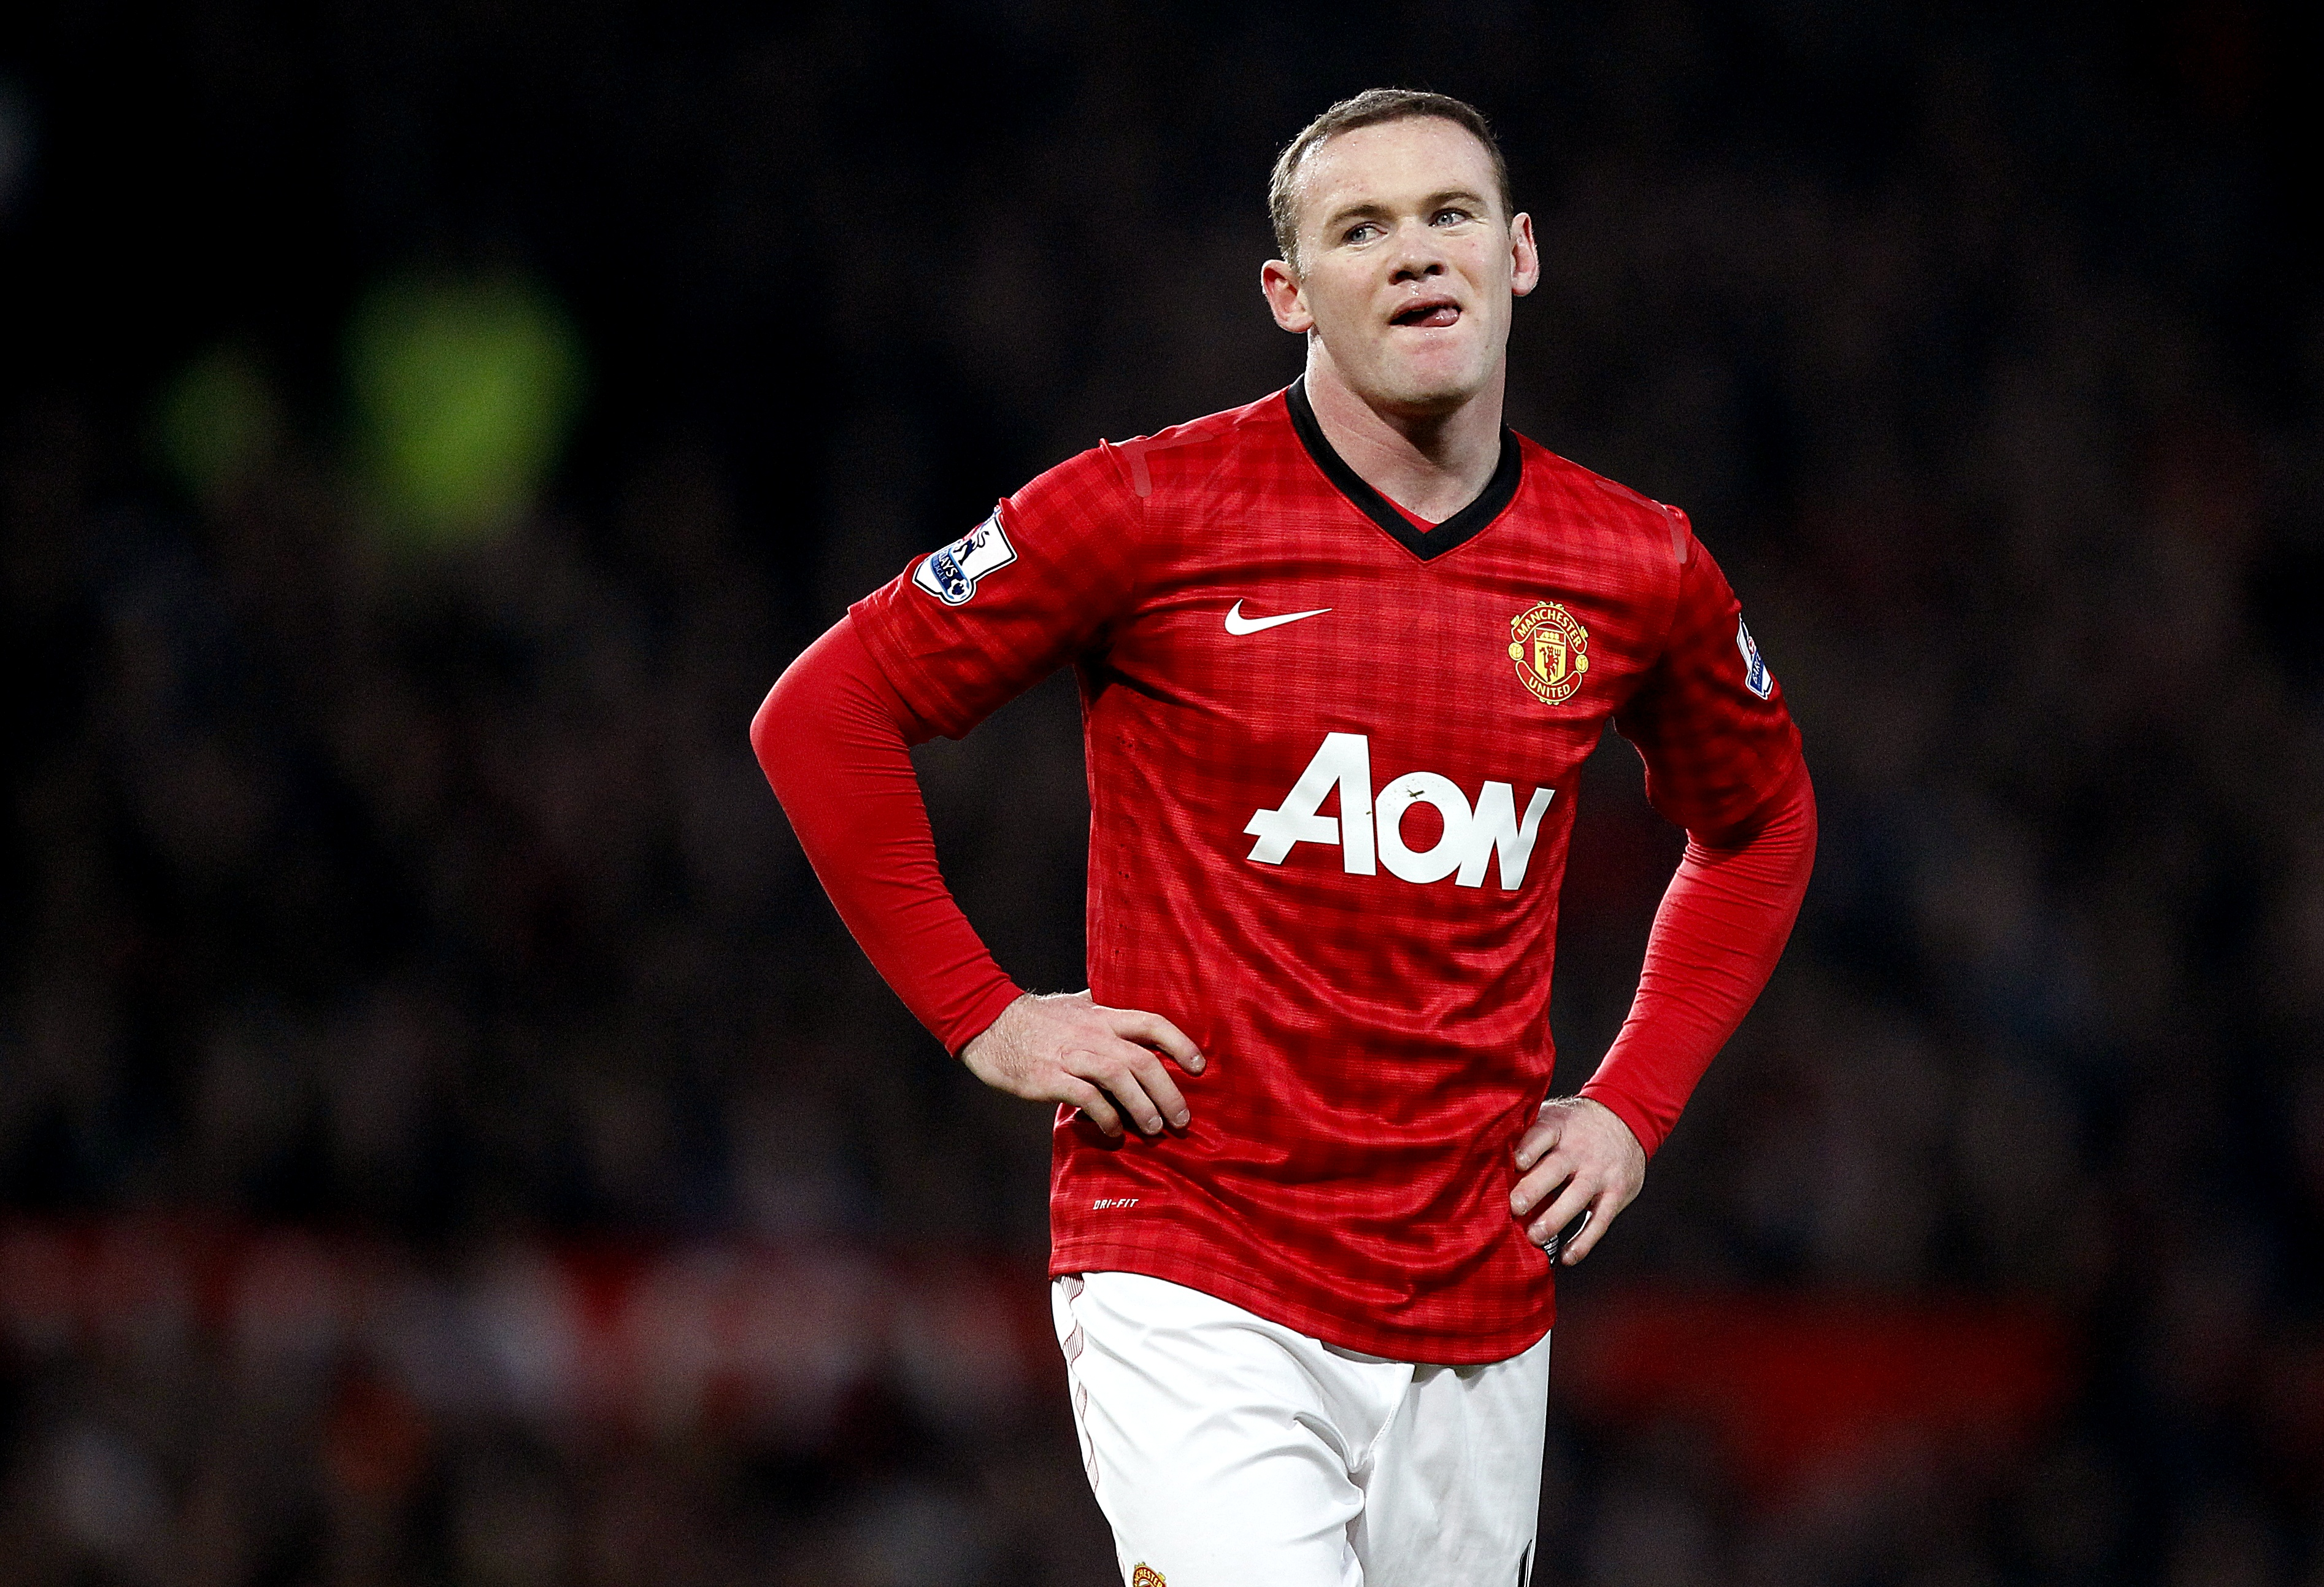 Wayne Rooney will remain a Manchester United player according to David Moyes (Picture: PA)